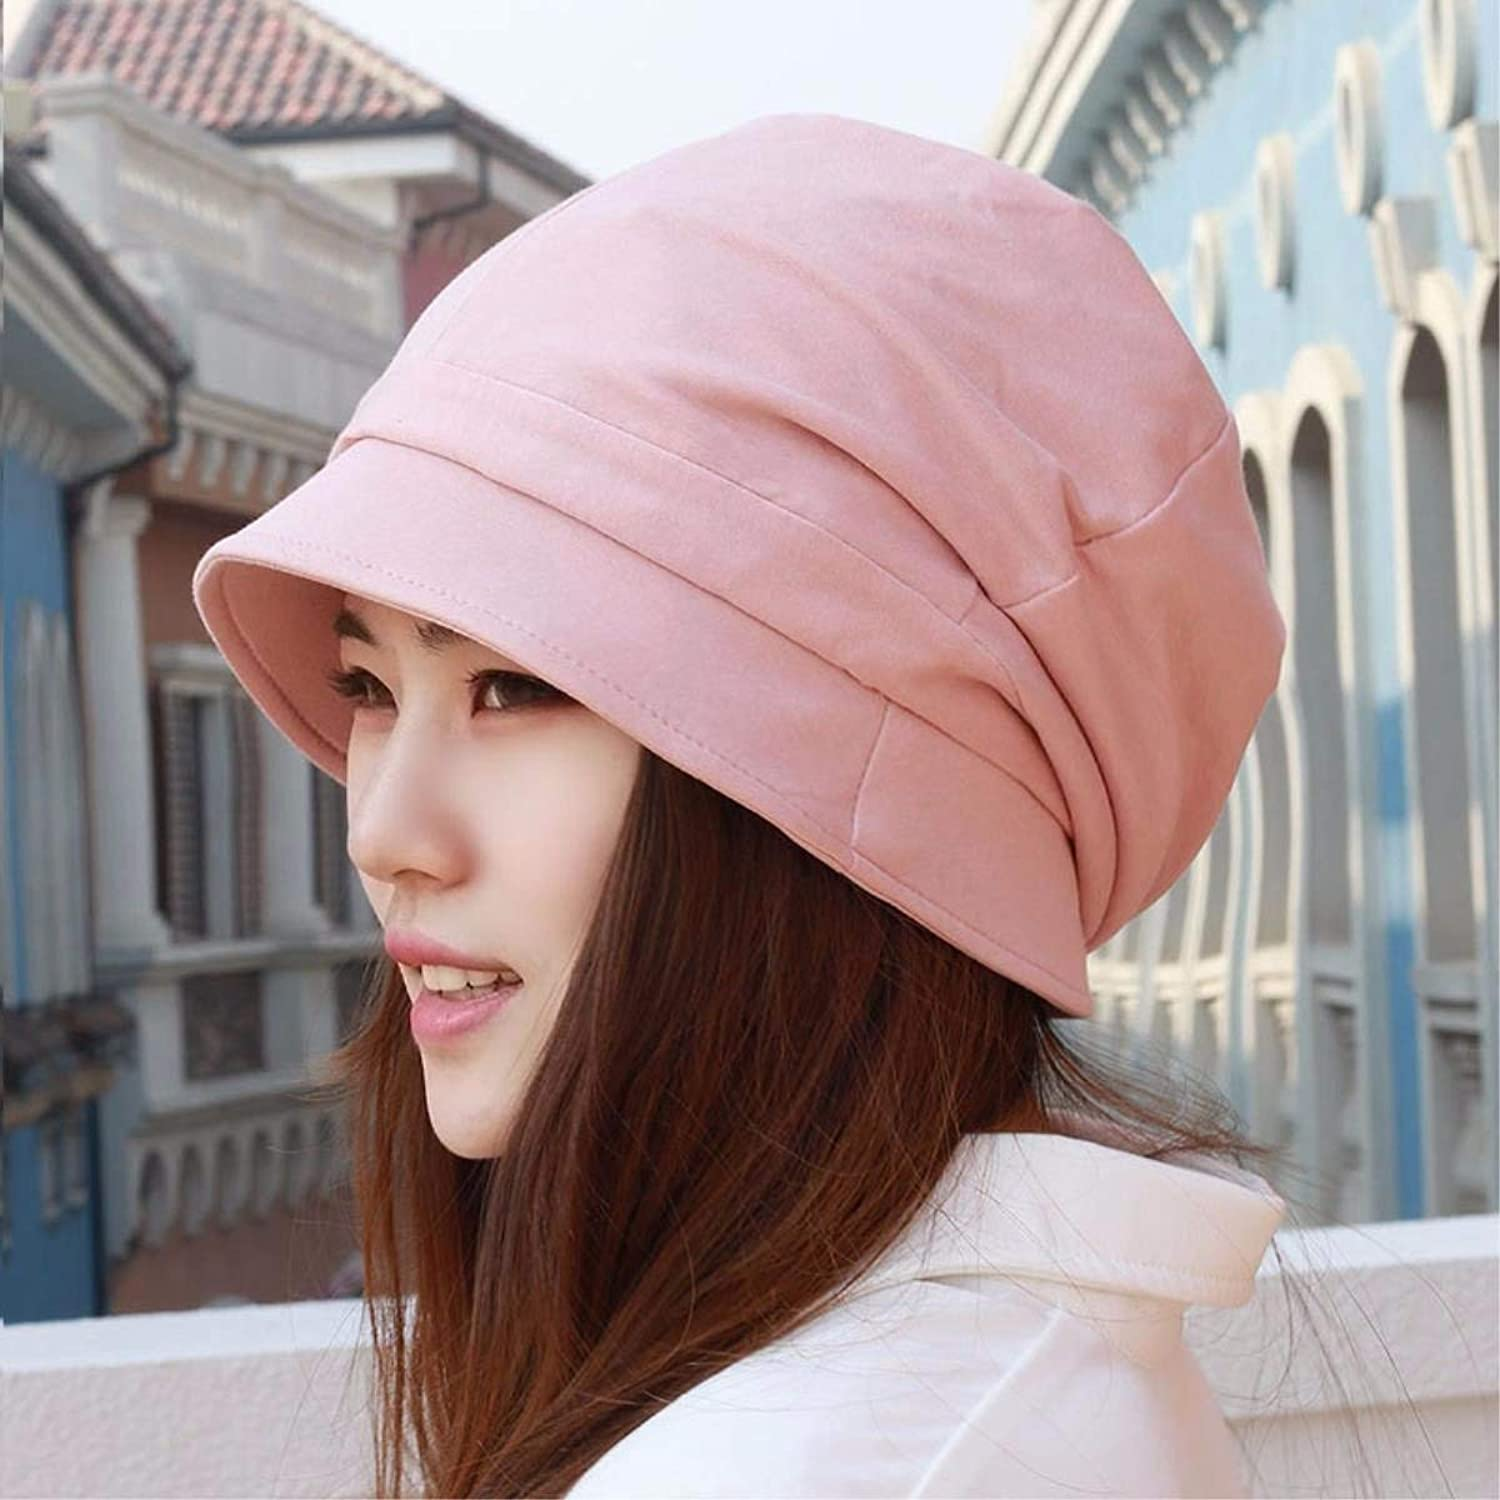 Chuiqingnet Hat female autumn cap headed Wai basin cap hat octagonal cap storehouse hat painter hat fisherman's cap, the cap